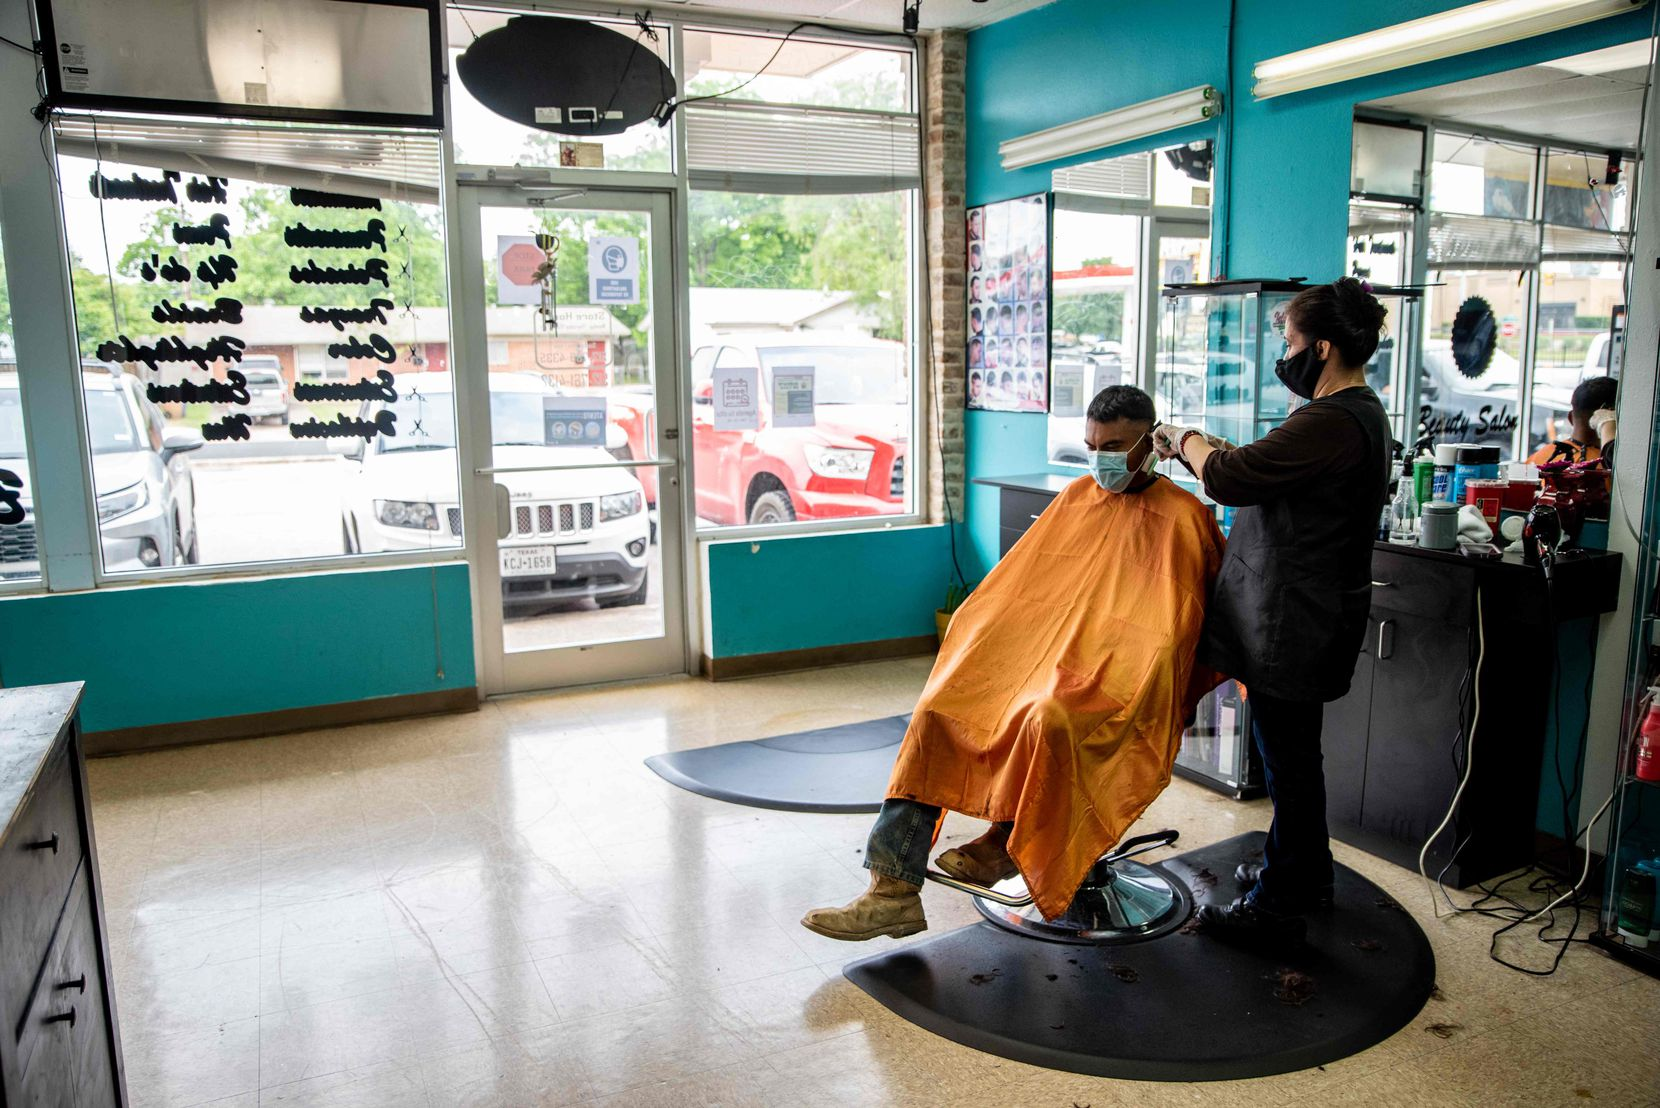 A young man gets a haircut at a barbershop in Austin on May 8, following the slow reopening of Texas businesses during the COVID-19 pandemic.